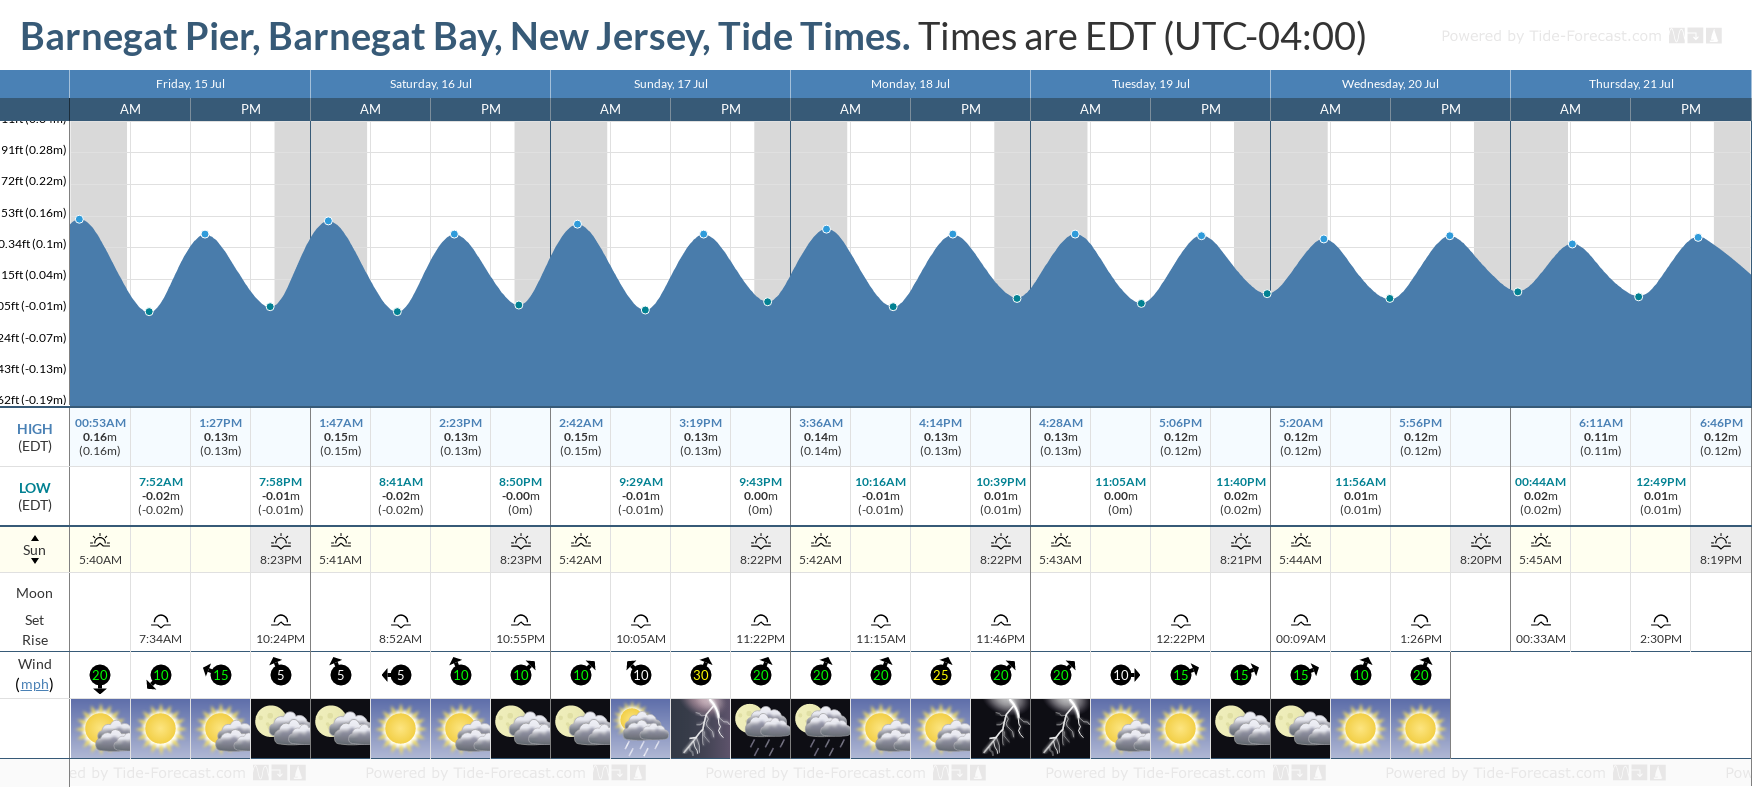 Barnegat Pier, Barnegat Bay, New Jersey Tide Chart including high and low tide tide times for the next 7 days